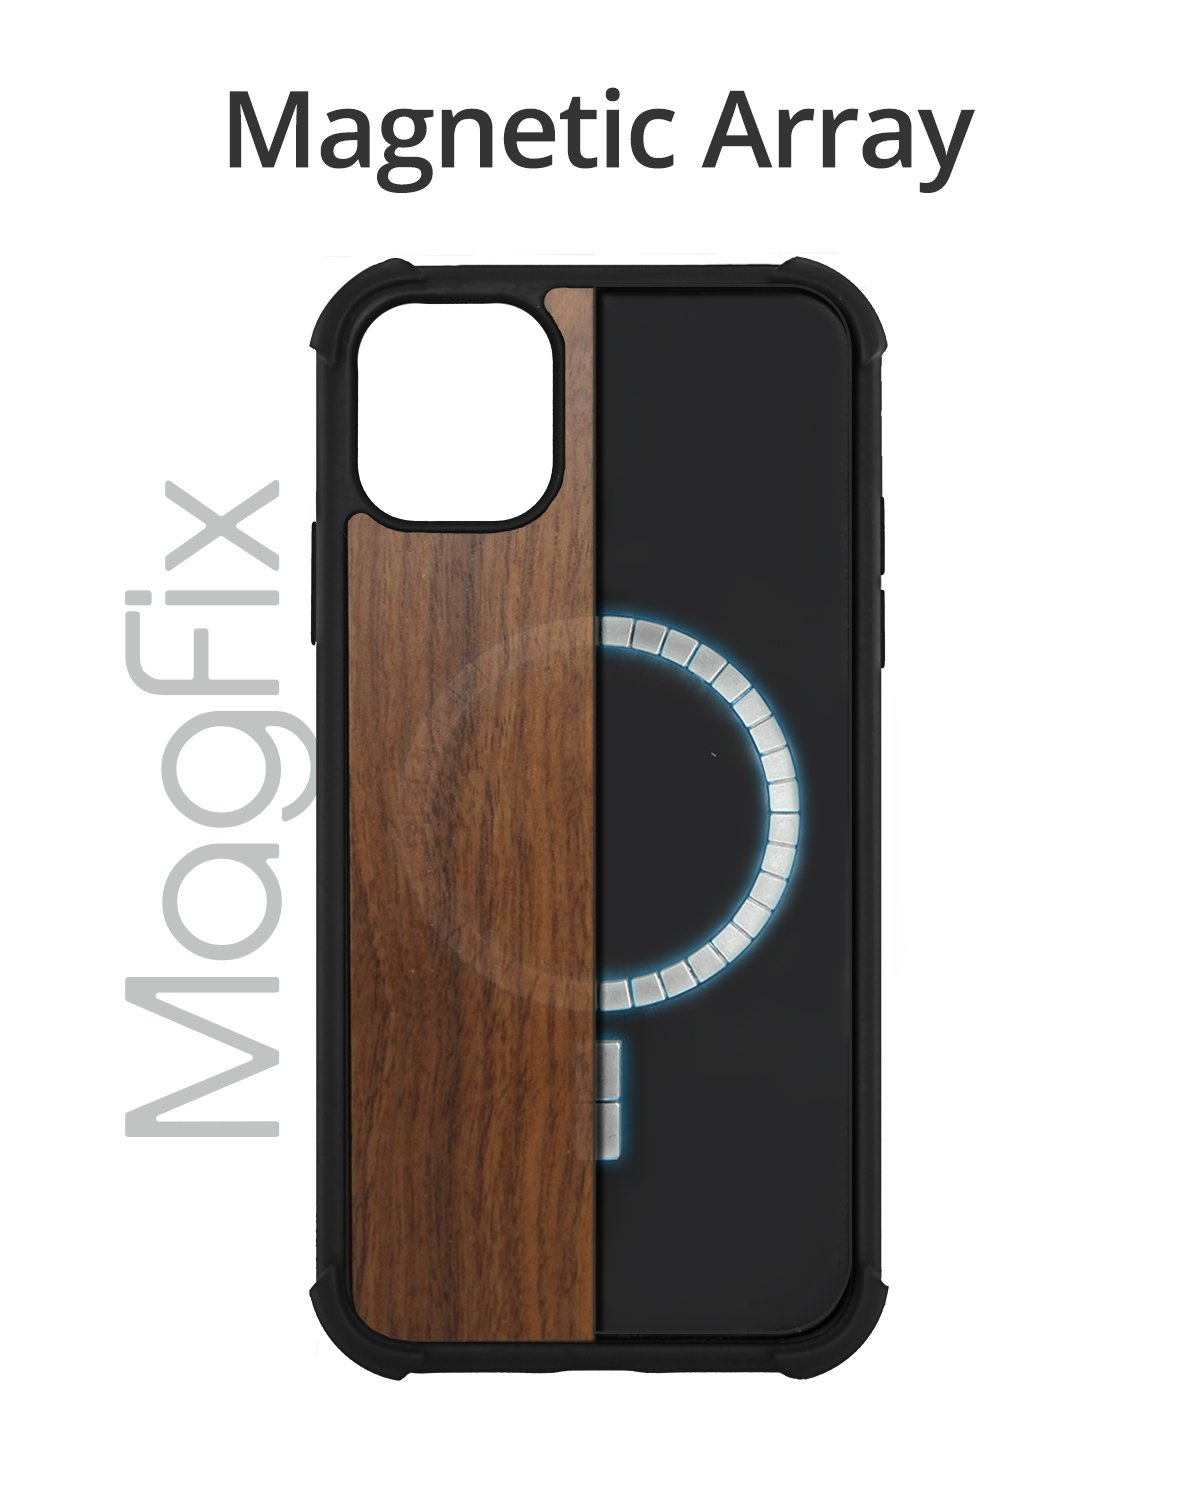 "RAEGR iPhone 12 / iPhone 12 Pro 5G MagFix Magnetic Case, Supports Mag-Safe Wireless Charging 6.1""- Elements Armor Case with Real Wood"